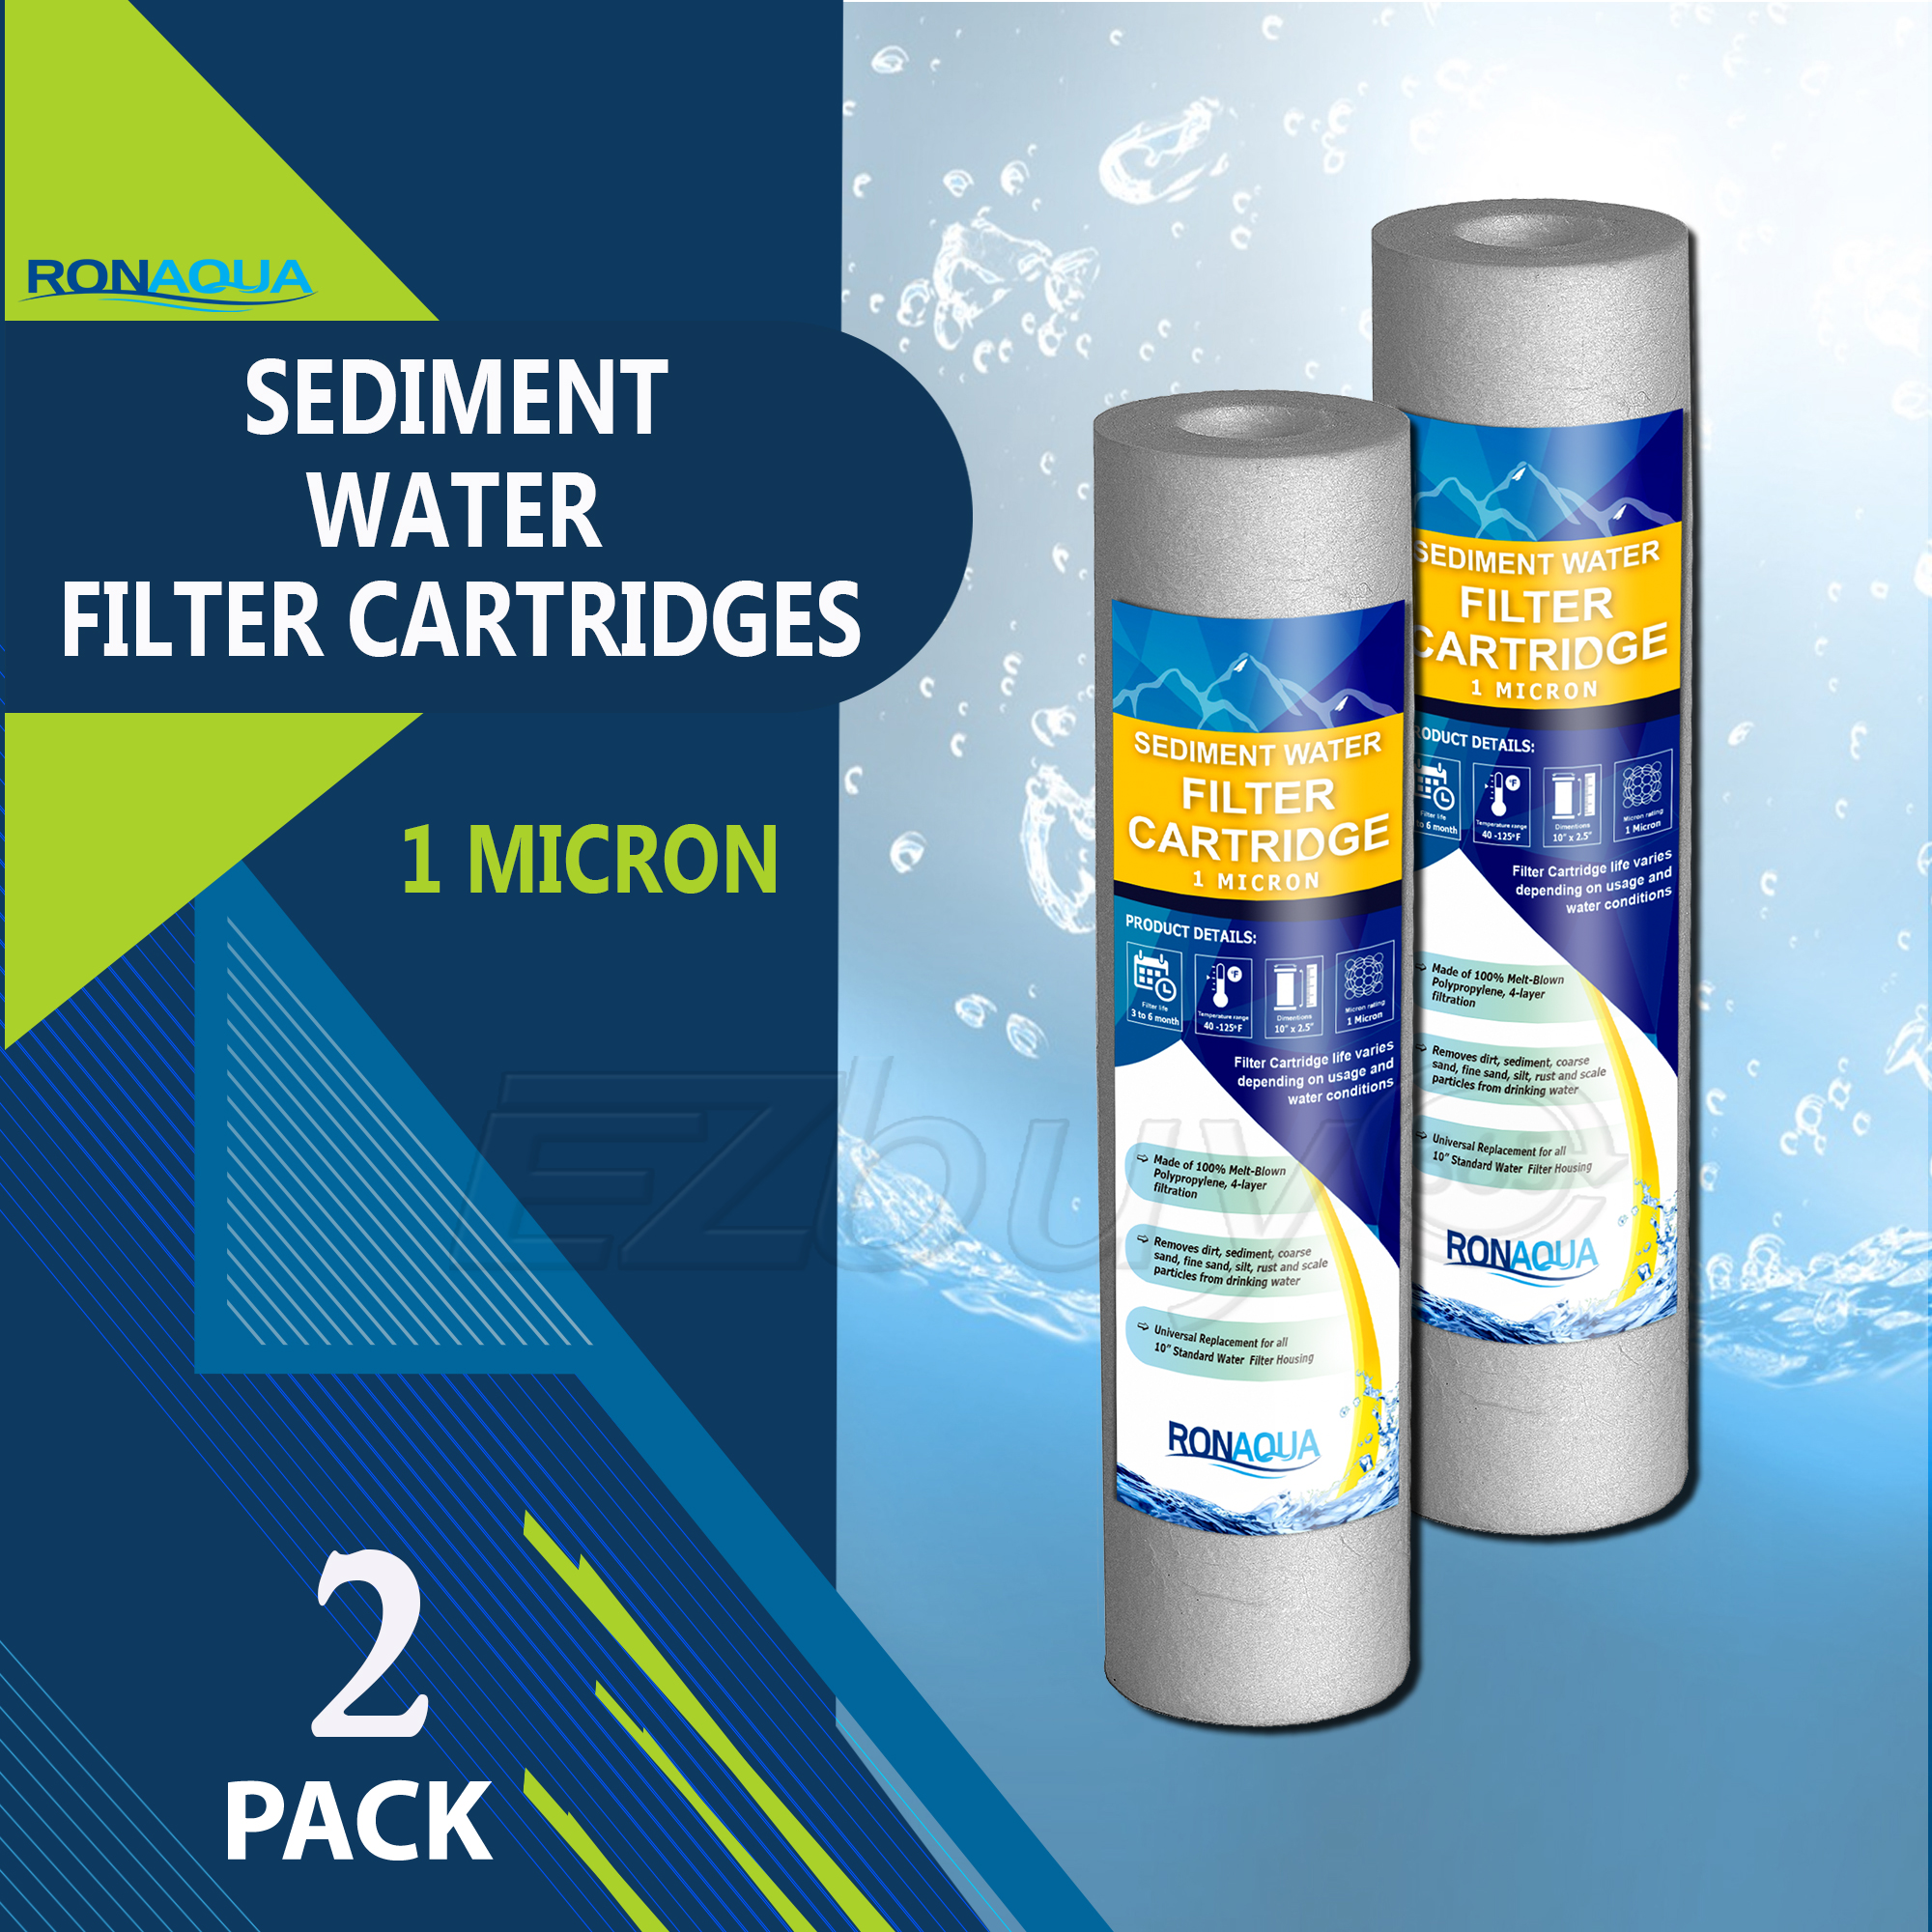 "Sediment Water Filter Cartridge by Ronaqua 10""x 2.5"", Four Layers of Filtration, Removes Sand, Dirt, Silt, Rust, made from Polypropylene (2 Pack, 1 Micron)"